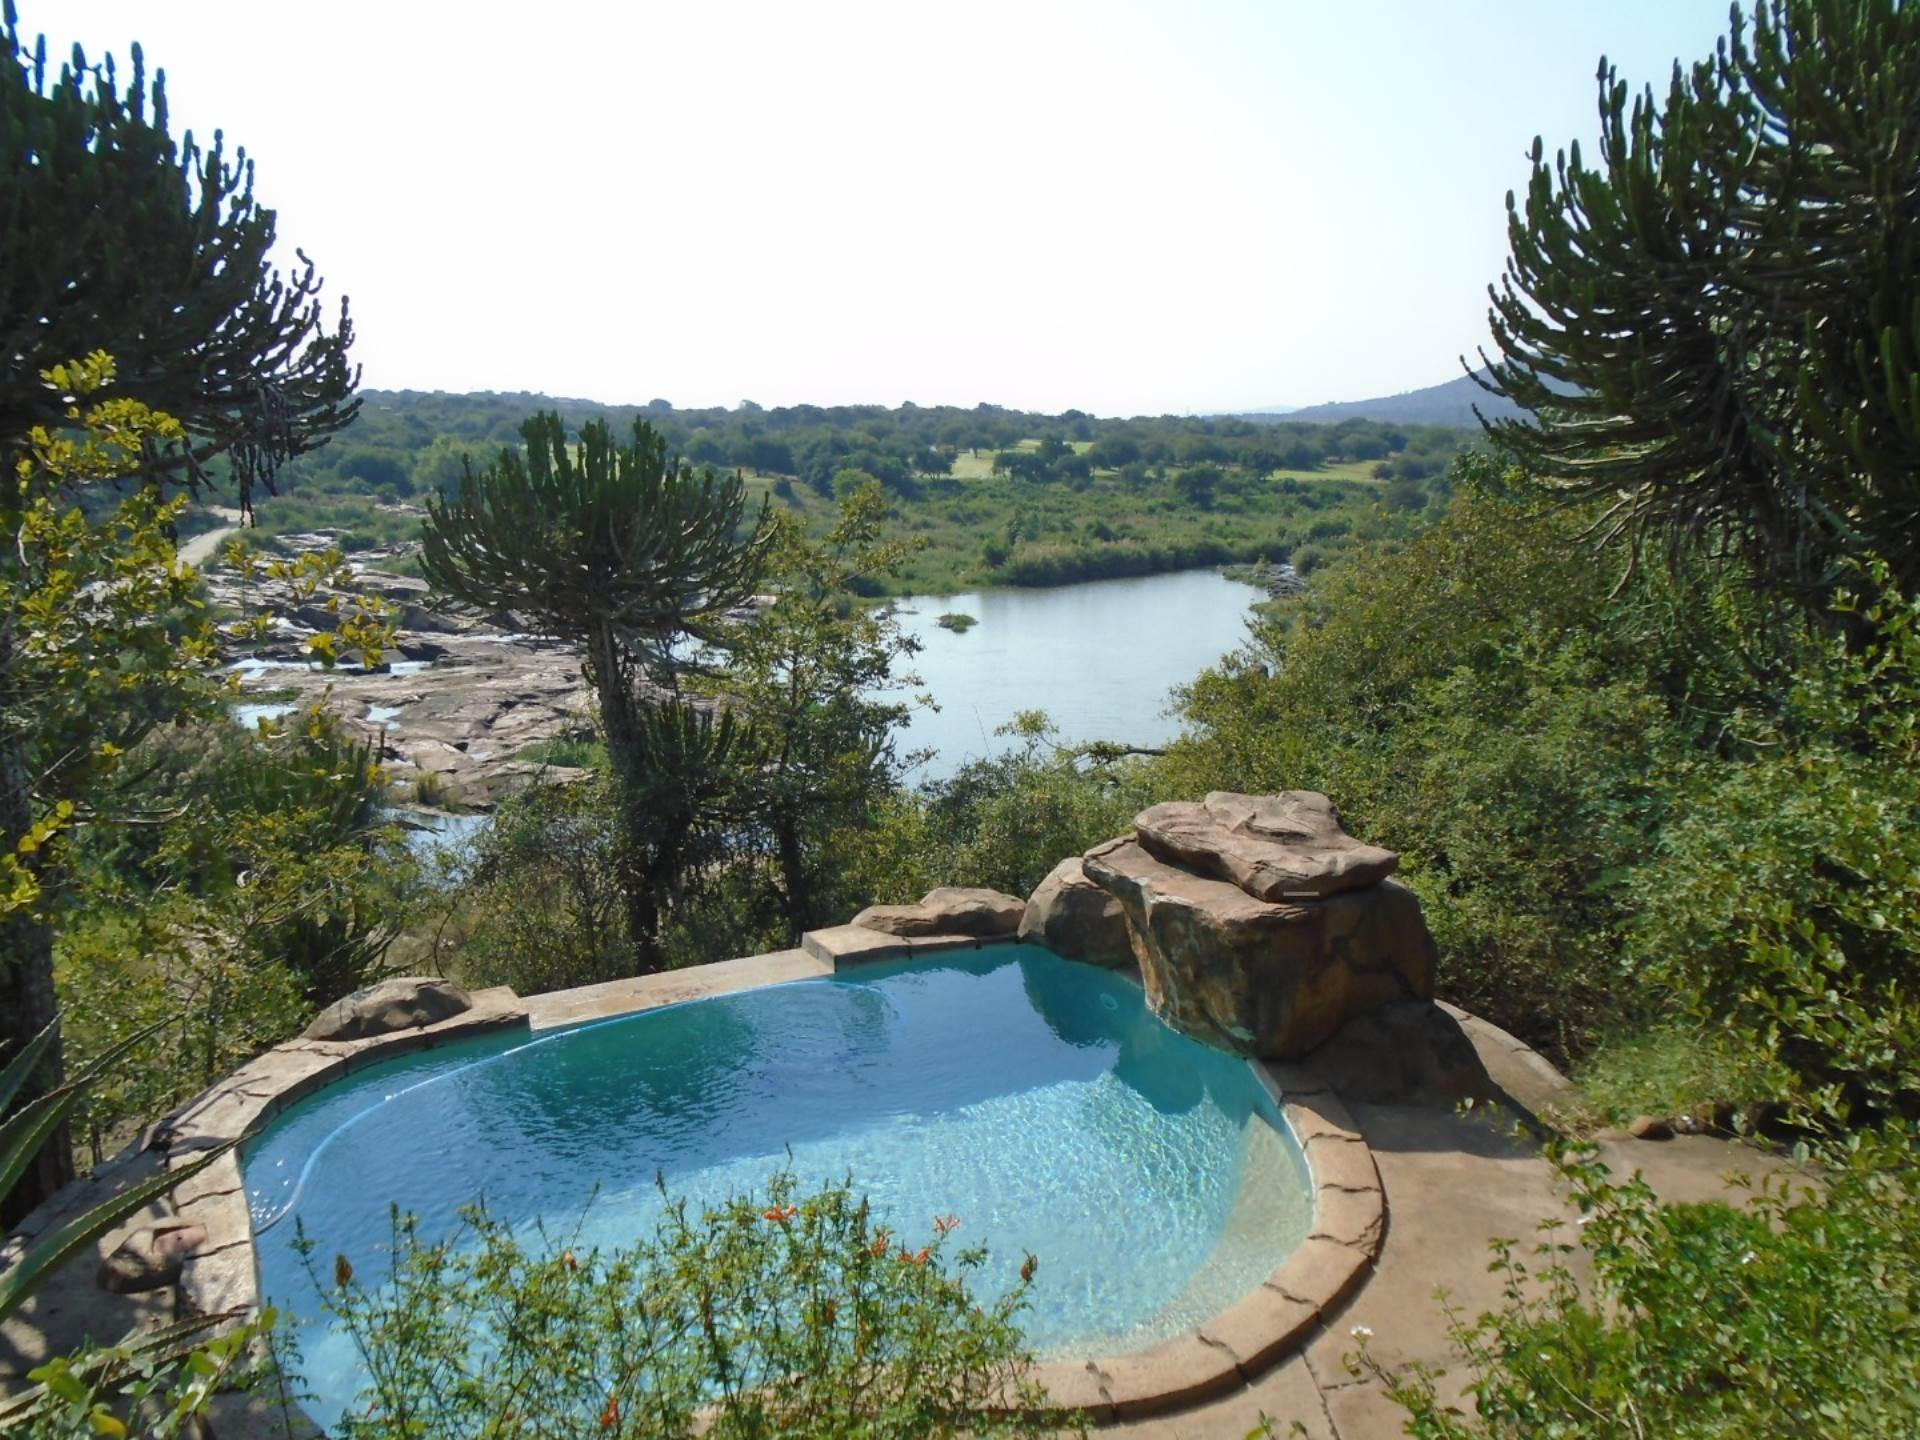 8 BedroomGame Farm Lodge For Sale In Komatipoort